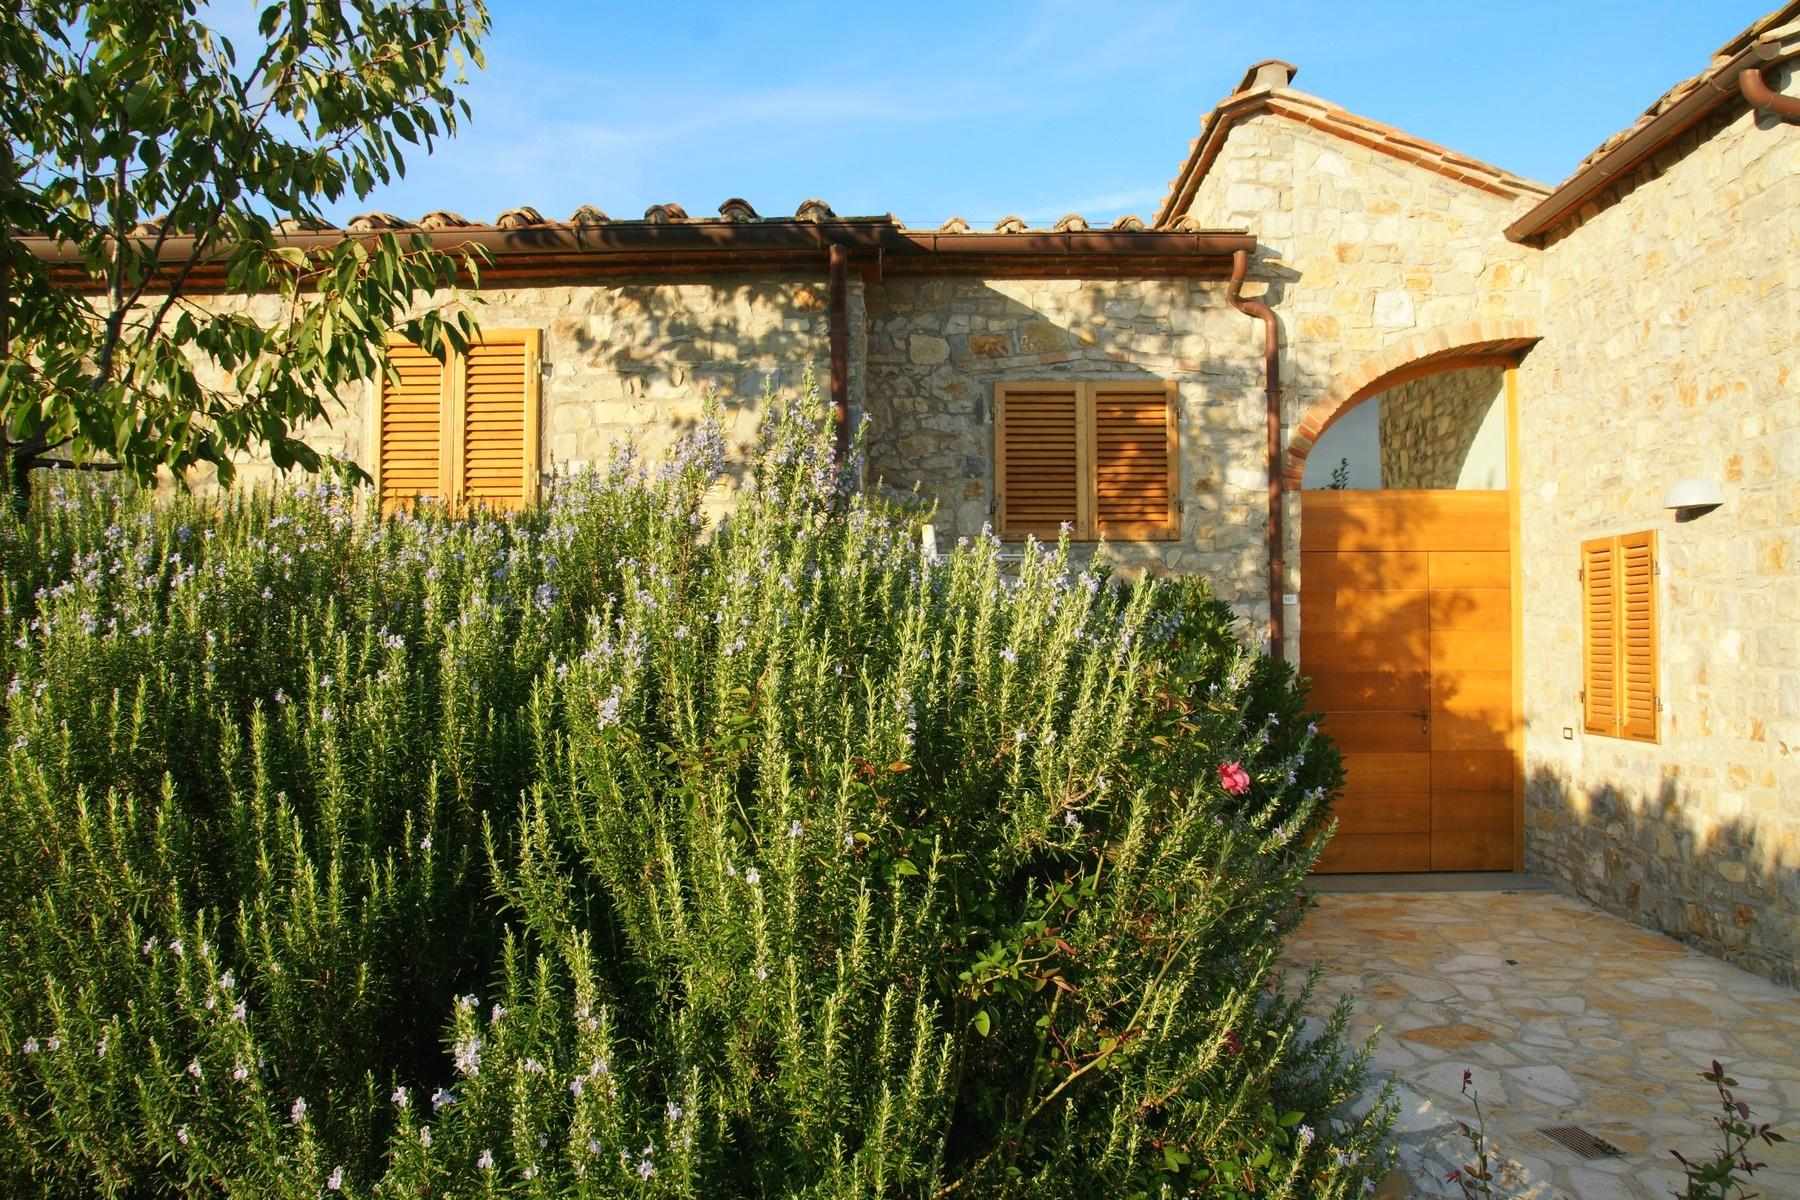 Residential property and boutique winery in the heart of Chianti - 11